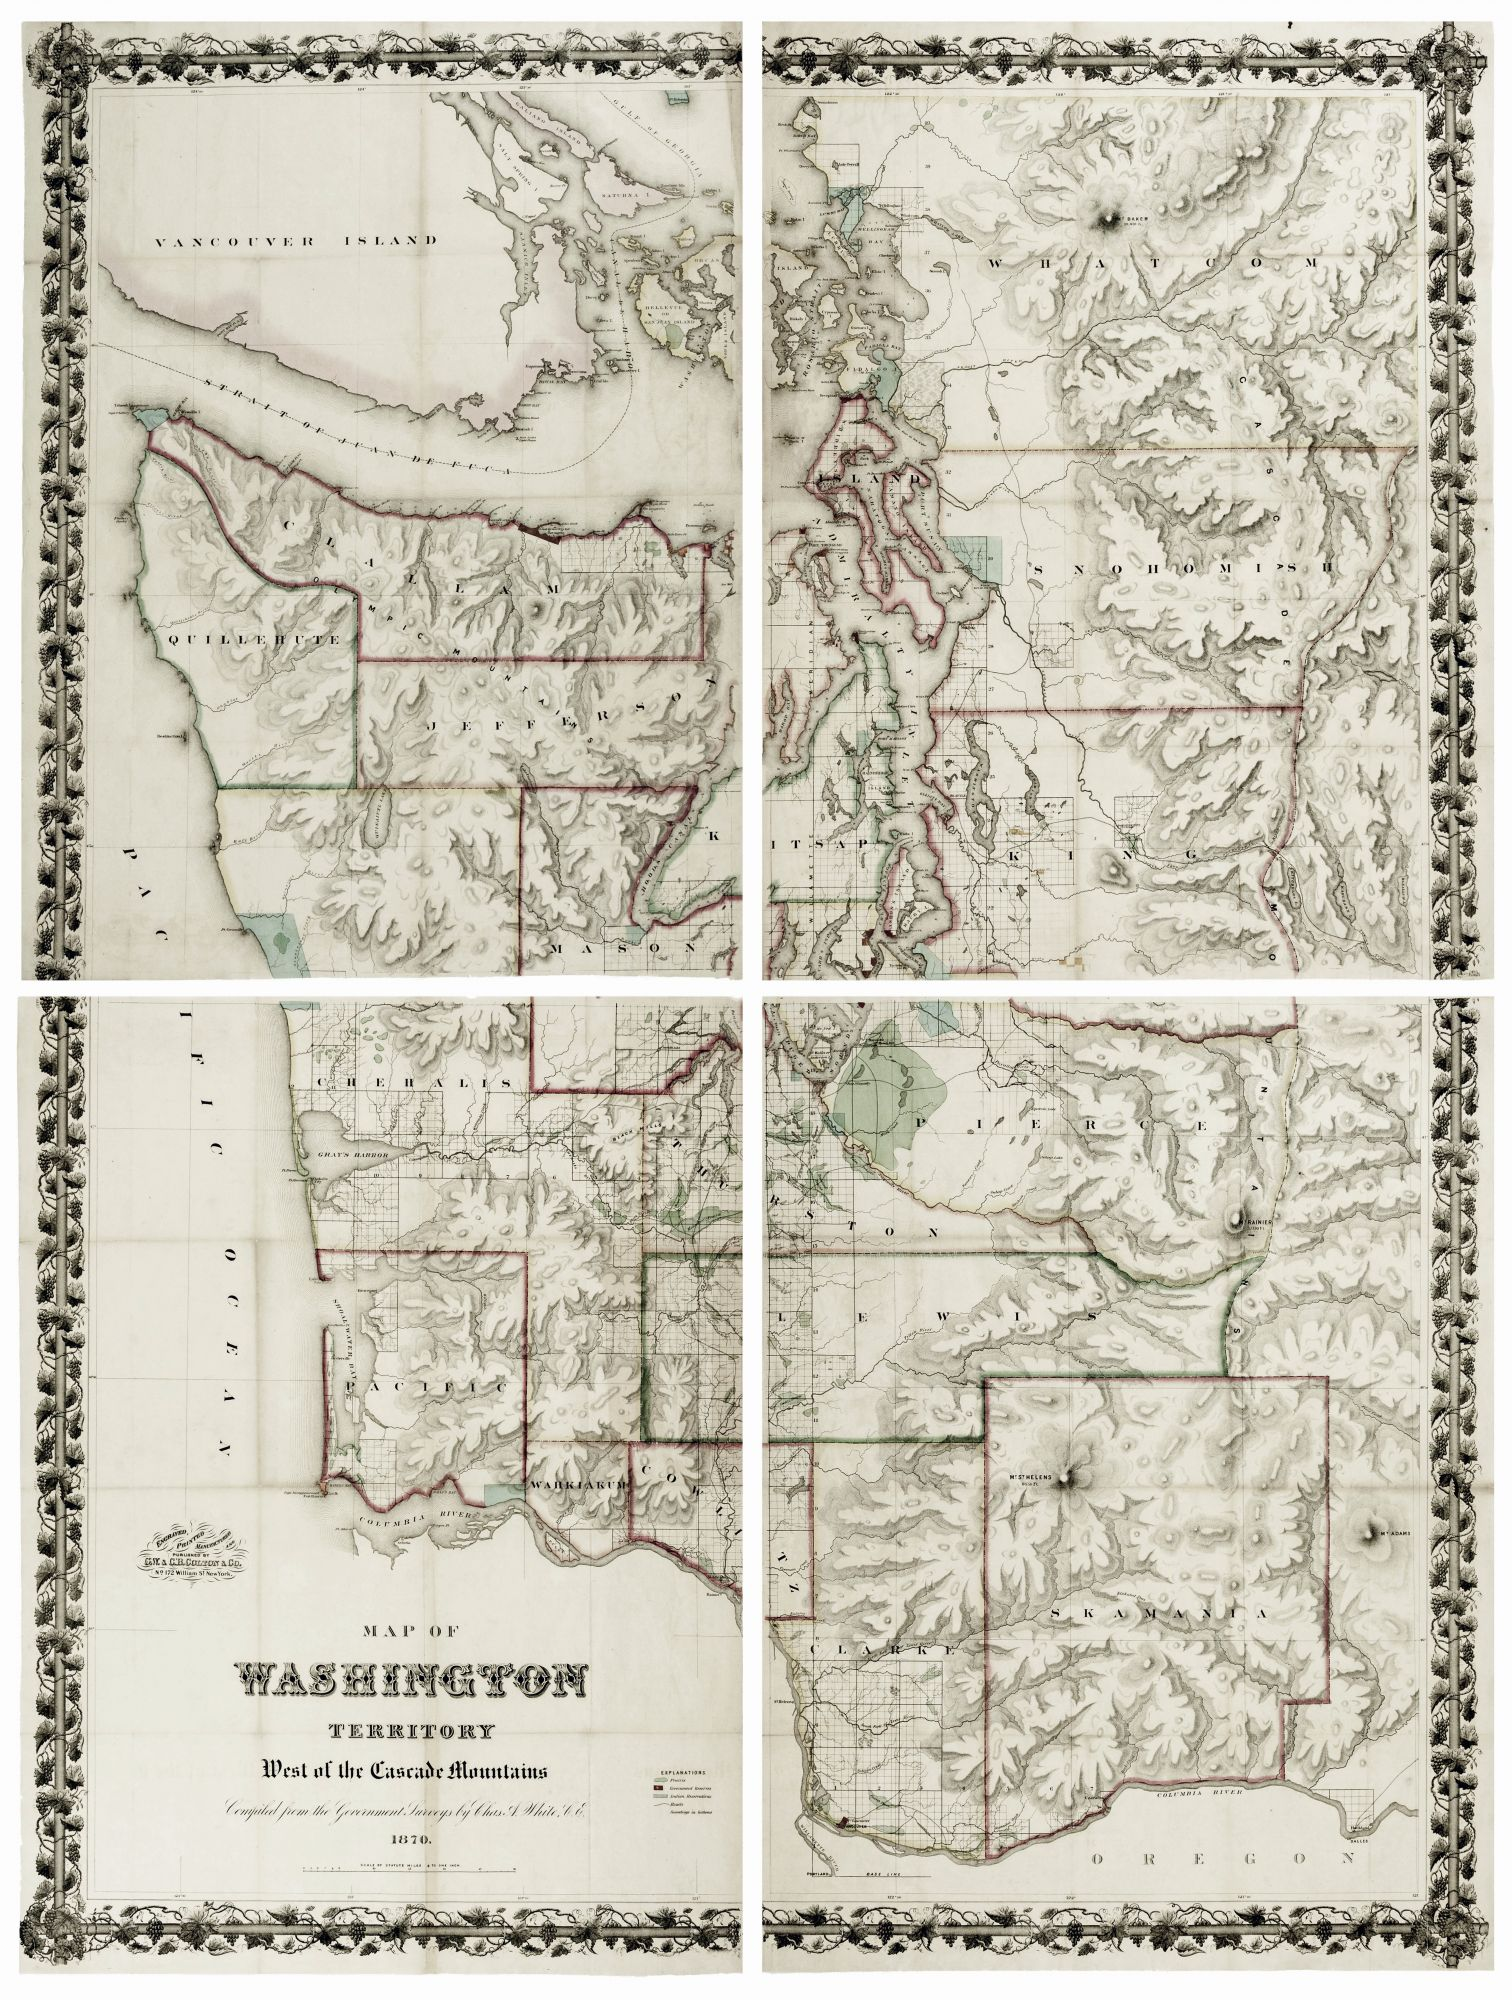 A Map of Washington Territory West of the Cascade Mountains by C  A / G  W   WHITE, C  B  COLTON on Martayan Lan